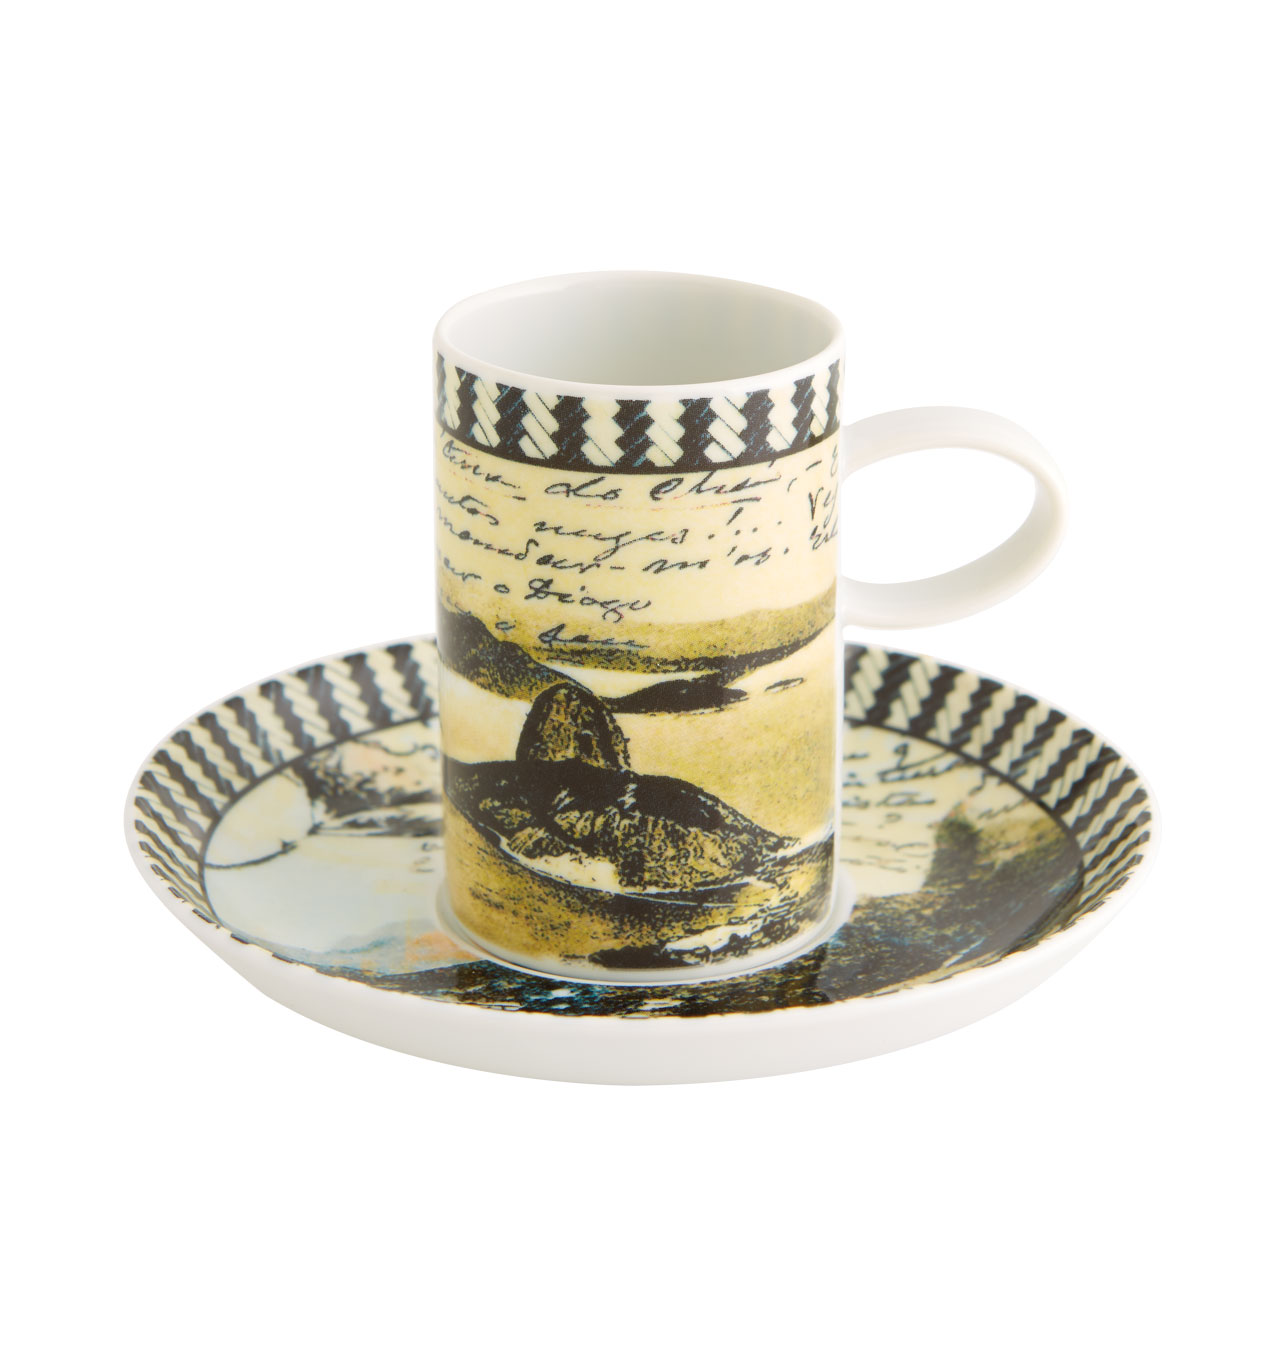 Vista Alegre Collection Olhar o Brasil Set 2 Coffee Cups and Saucers Rio